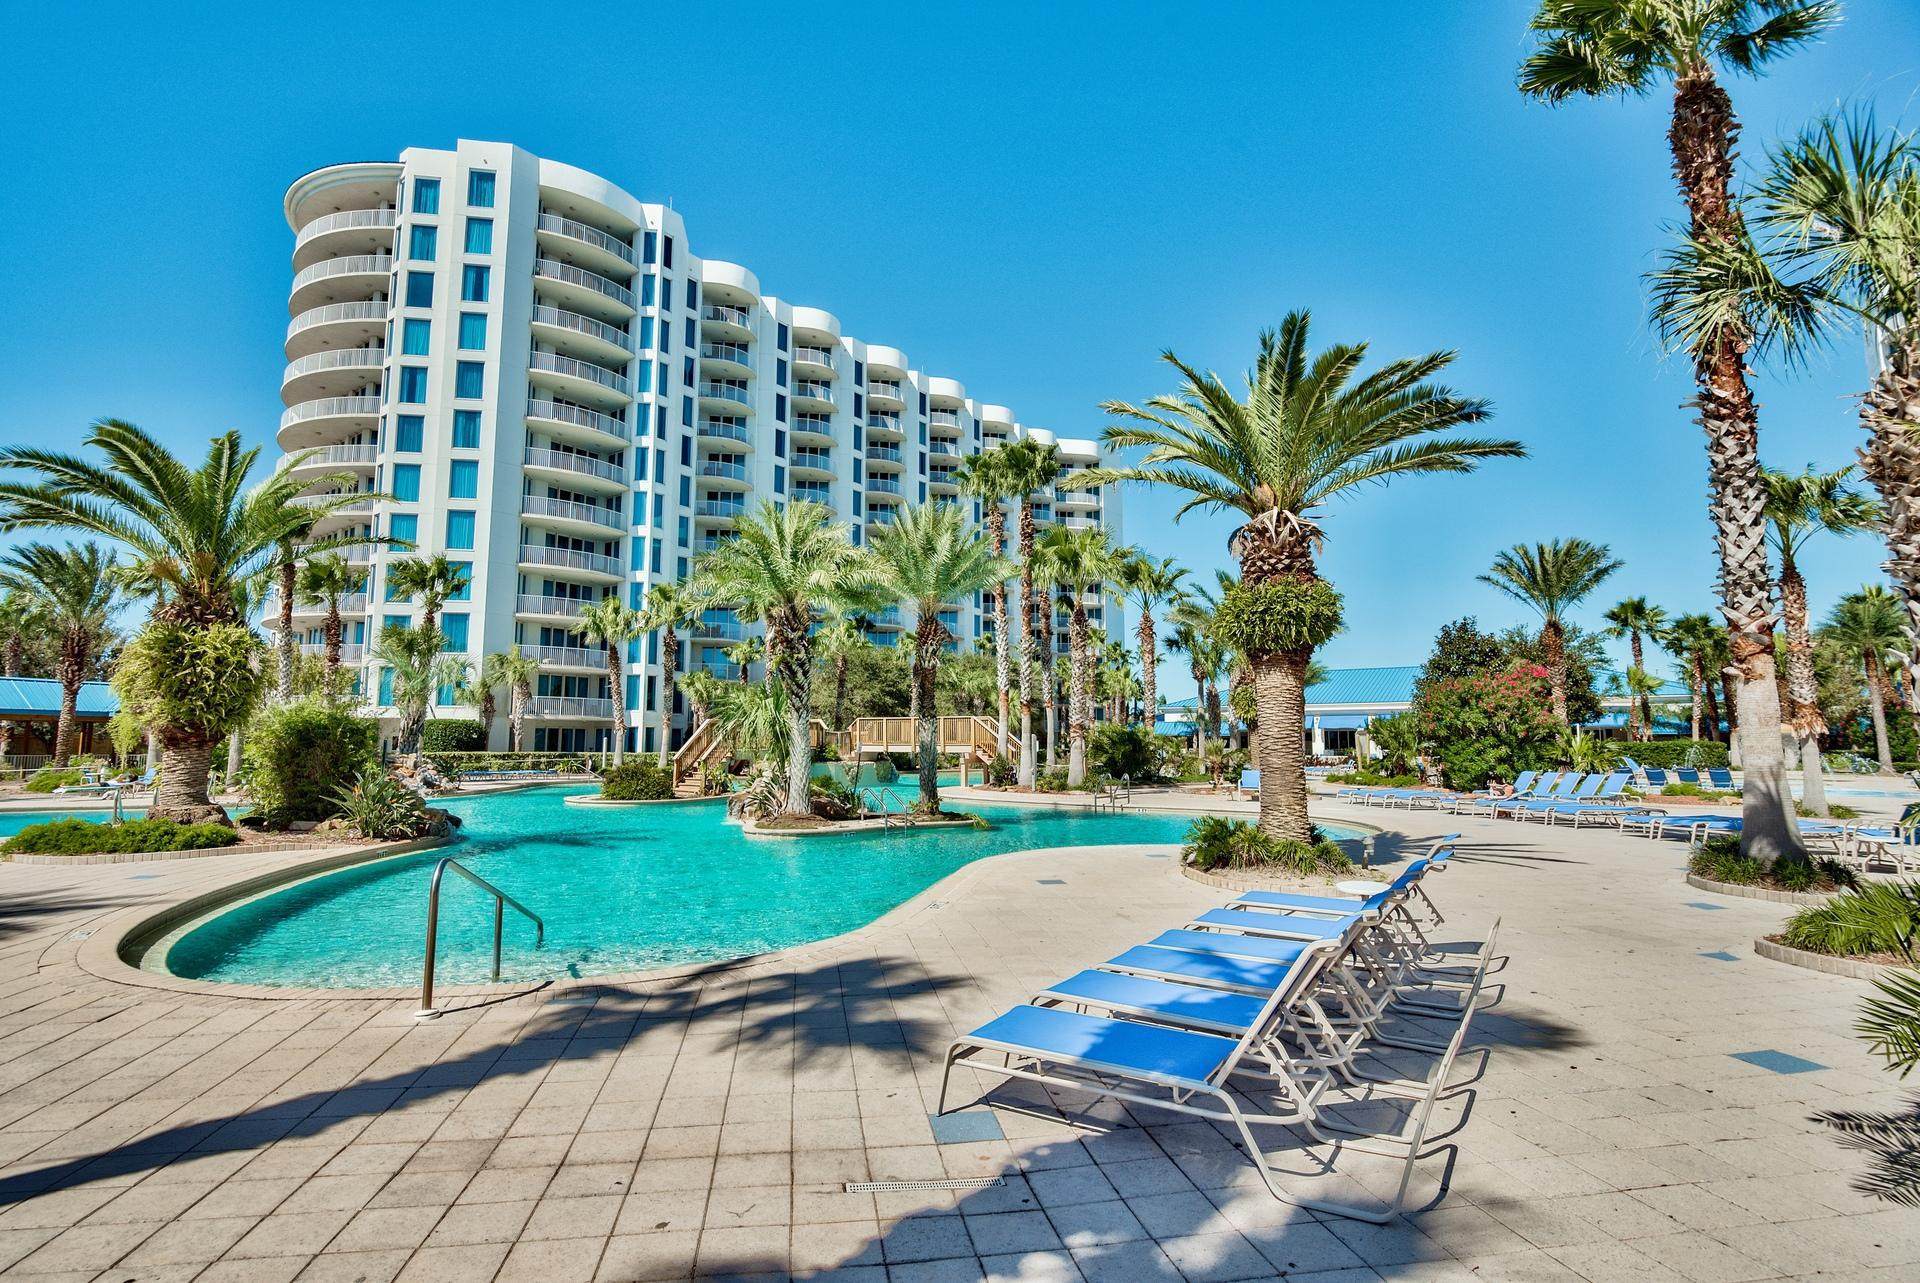 9th floor unit at The Palms of Destin! The Westerly views of Destin and of course the sunsets and the Gulf are incredible. Kitchen features granite countertops and maple cabinetry. Amenities at The Palms are first class. They include an expansive 11,000 SF lagoon pool with waterfall and spa, children's pool, playground and splash pool, lighted tennis and basketball courts, first class fitness center, seasonal shuttle service to the beach, and covered protected parking. Also on site is the  conference center, office center, and reception desk. THE ASSOCIATION FEES INCLUDE ALL UTILITIES, INCLUDING ELECTRICITY, WATER, CABLE, INTERNET, AND LOCAL PHONE SERVICE. Buyer to please verify all information including square footage, room dimensions, and all else.